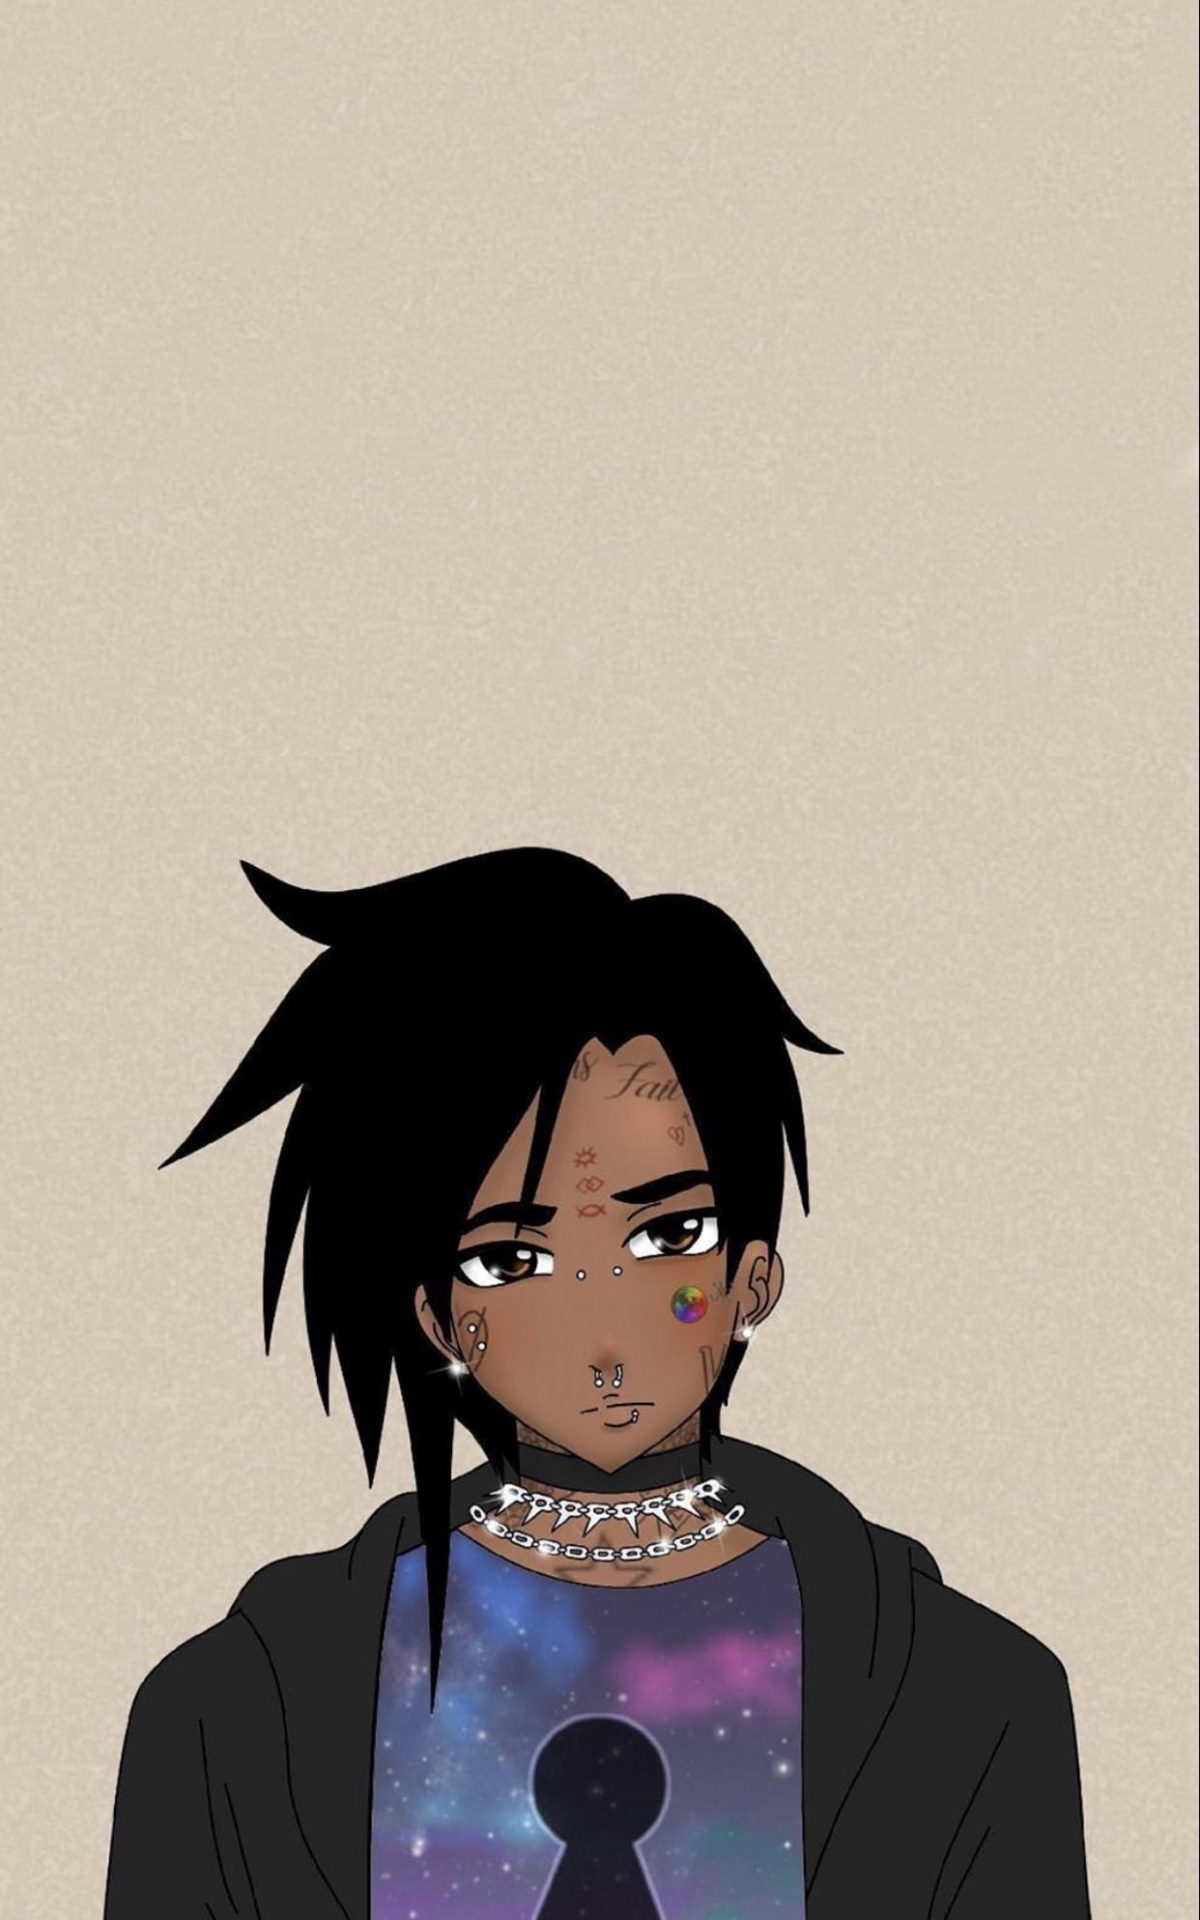 Free Download Eternal Atake Wallpaper For Your Phone Liluzivert